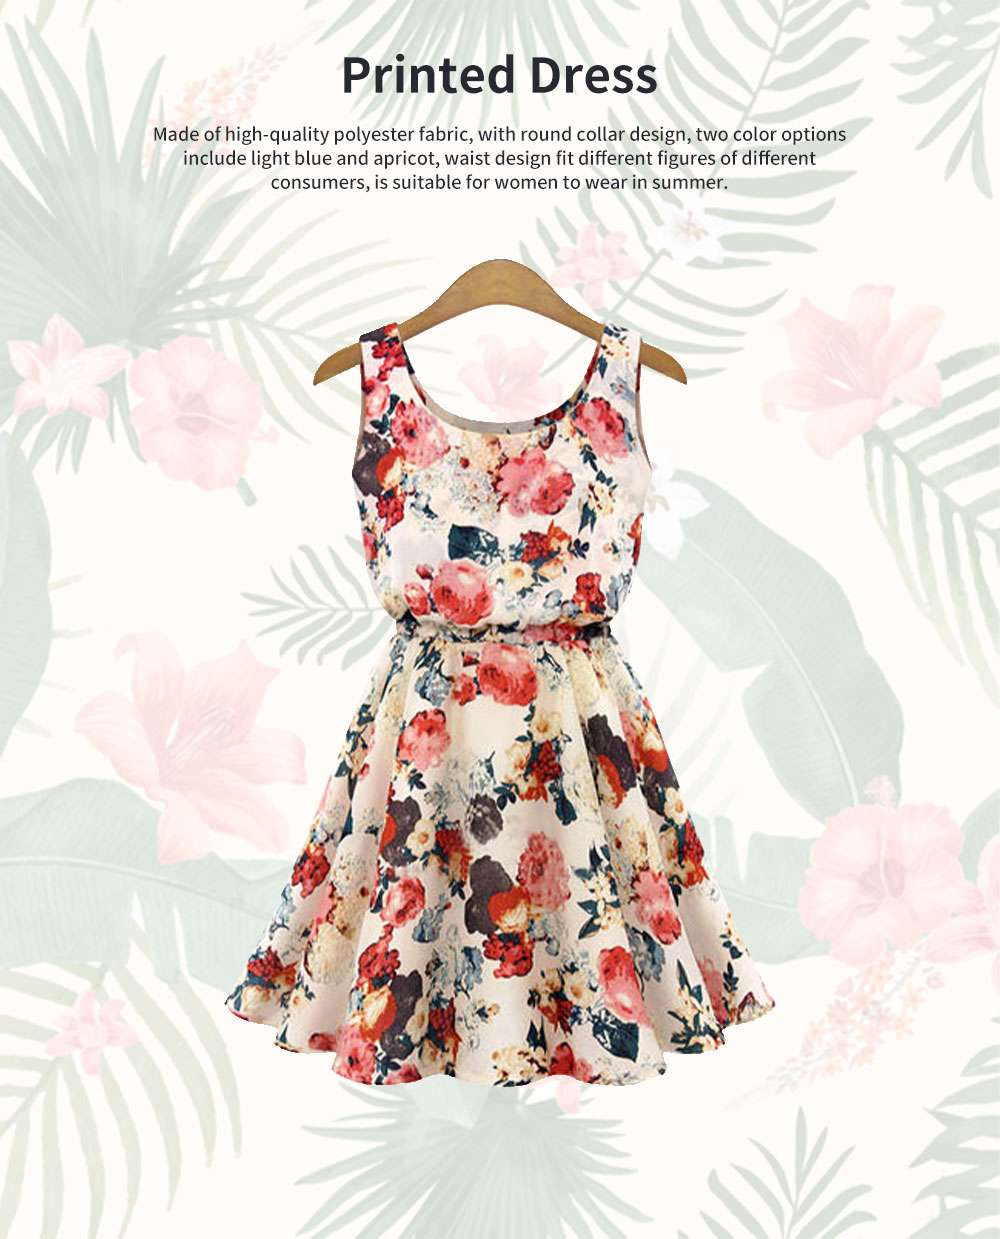 Printed Dress for Women Round Collar Exquisite Flower Printing Light Blue and Apricot Polyester One-piece Dresses Summer 0